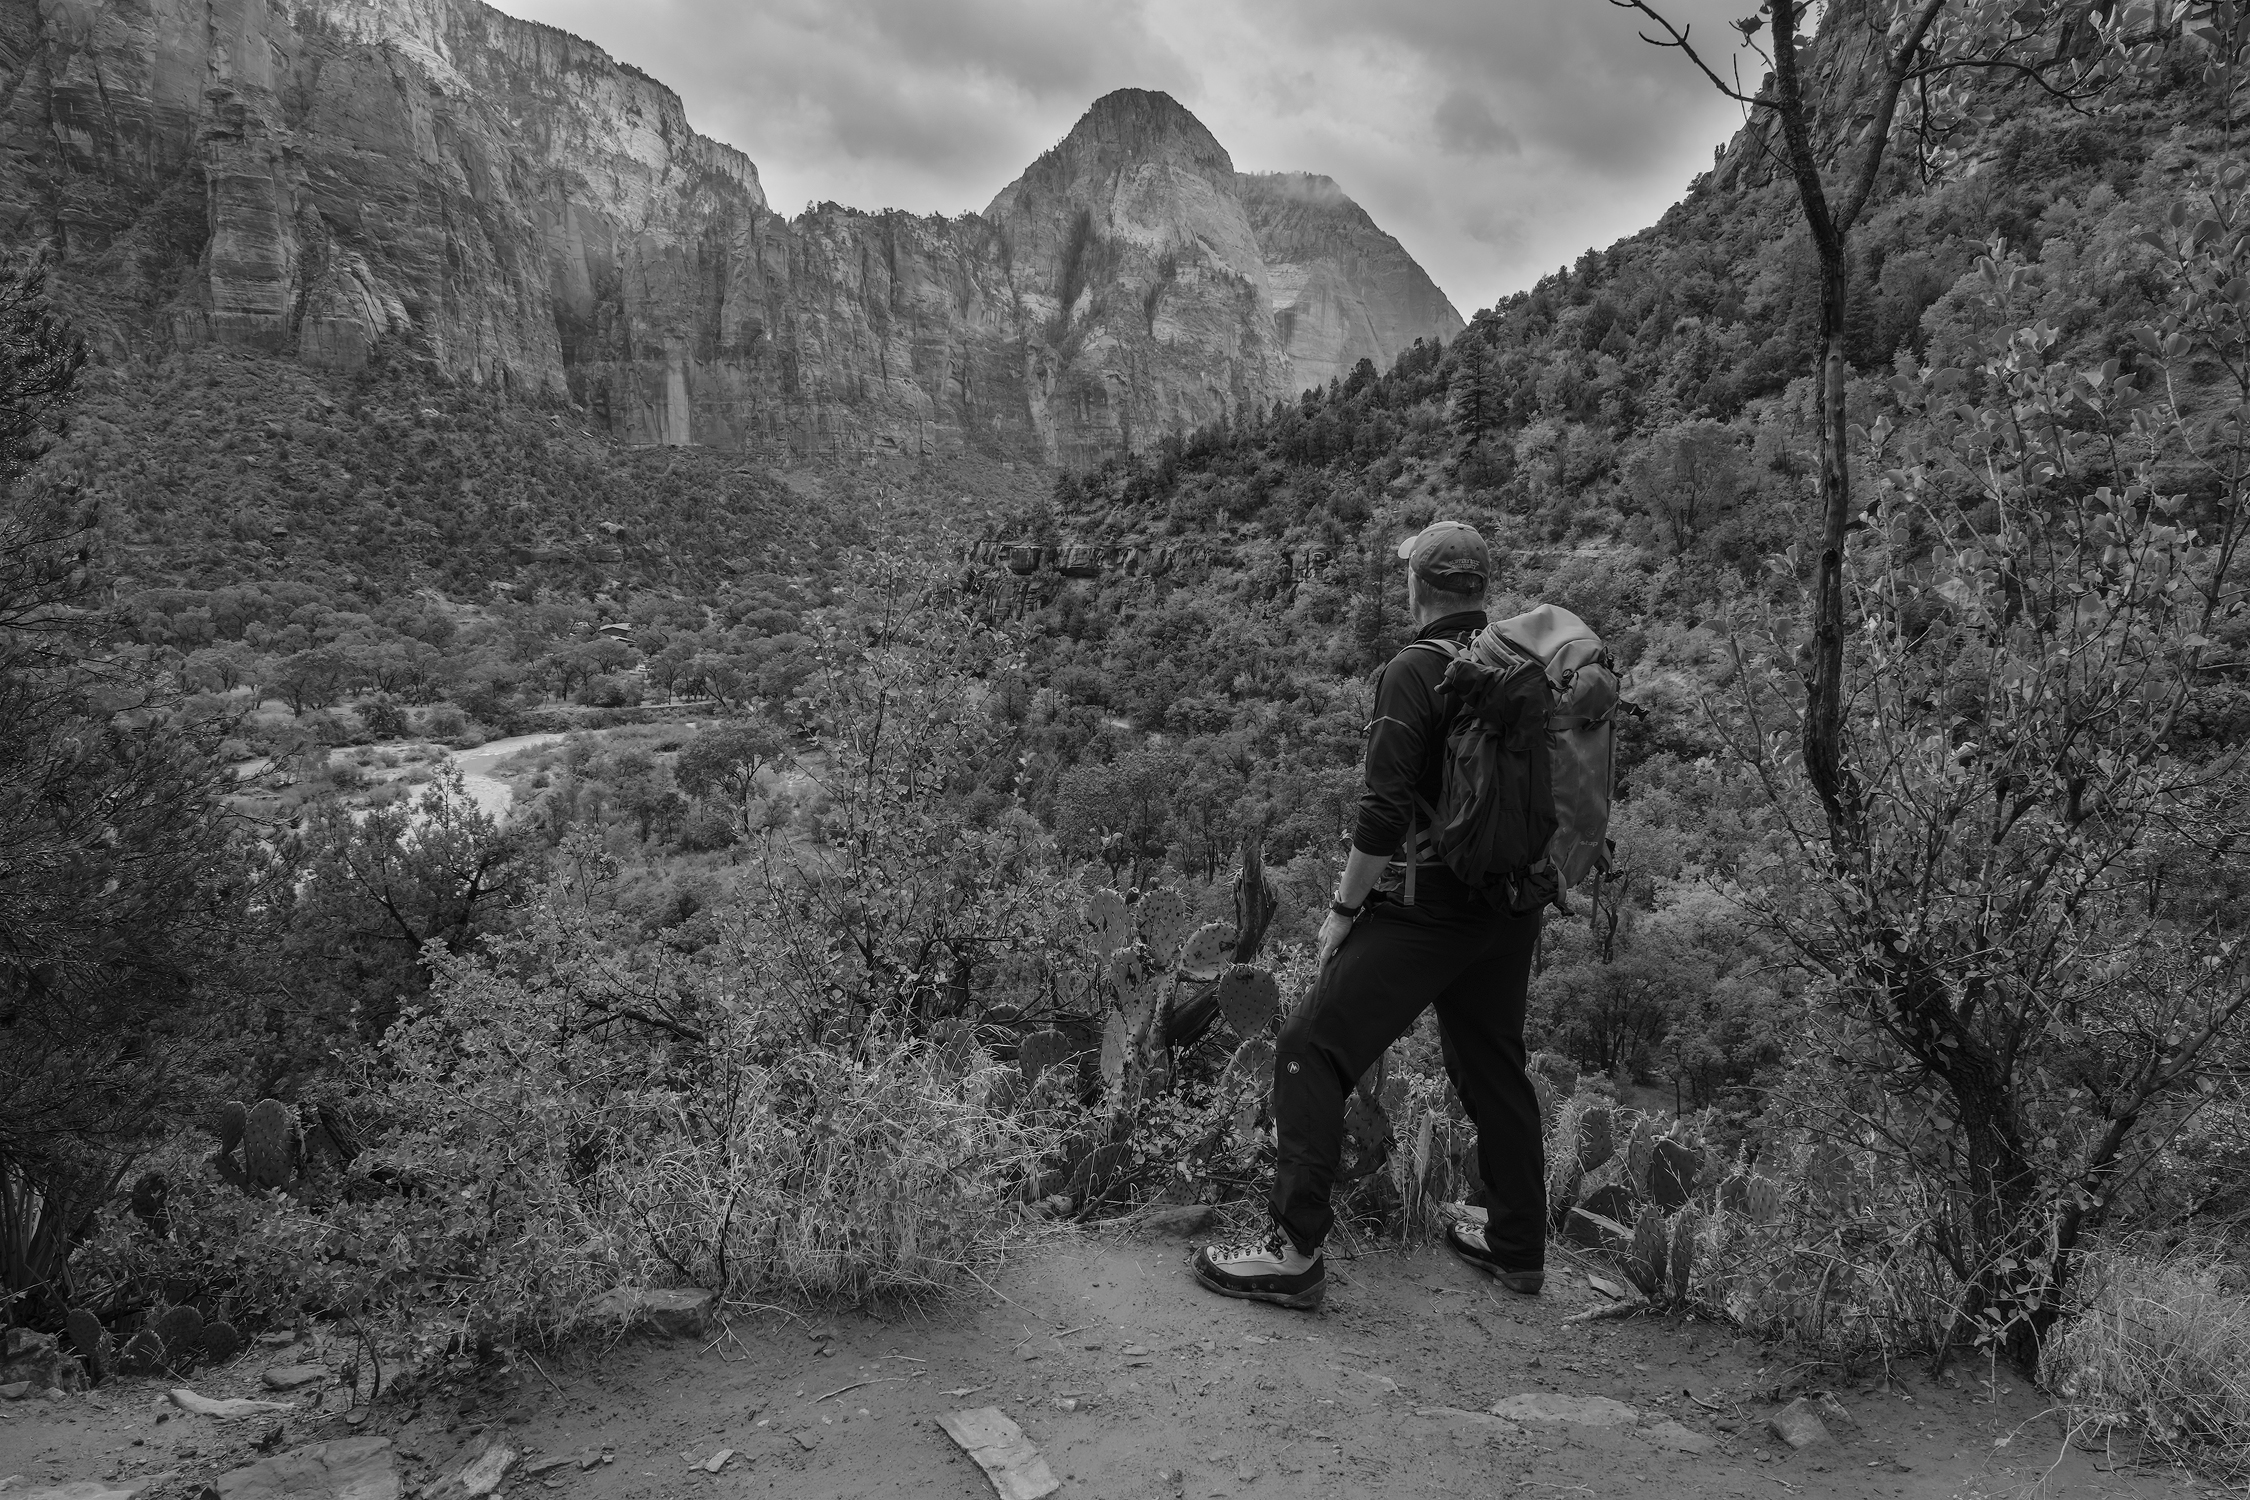 A View into the Valey of Zion Canyon, Zion National Park, UT.